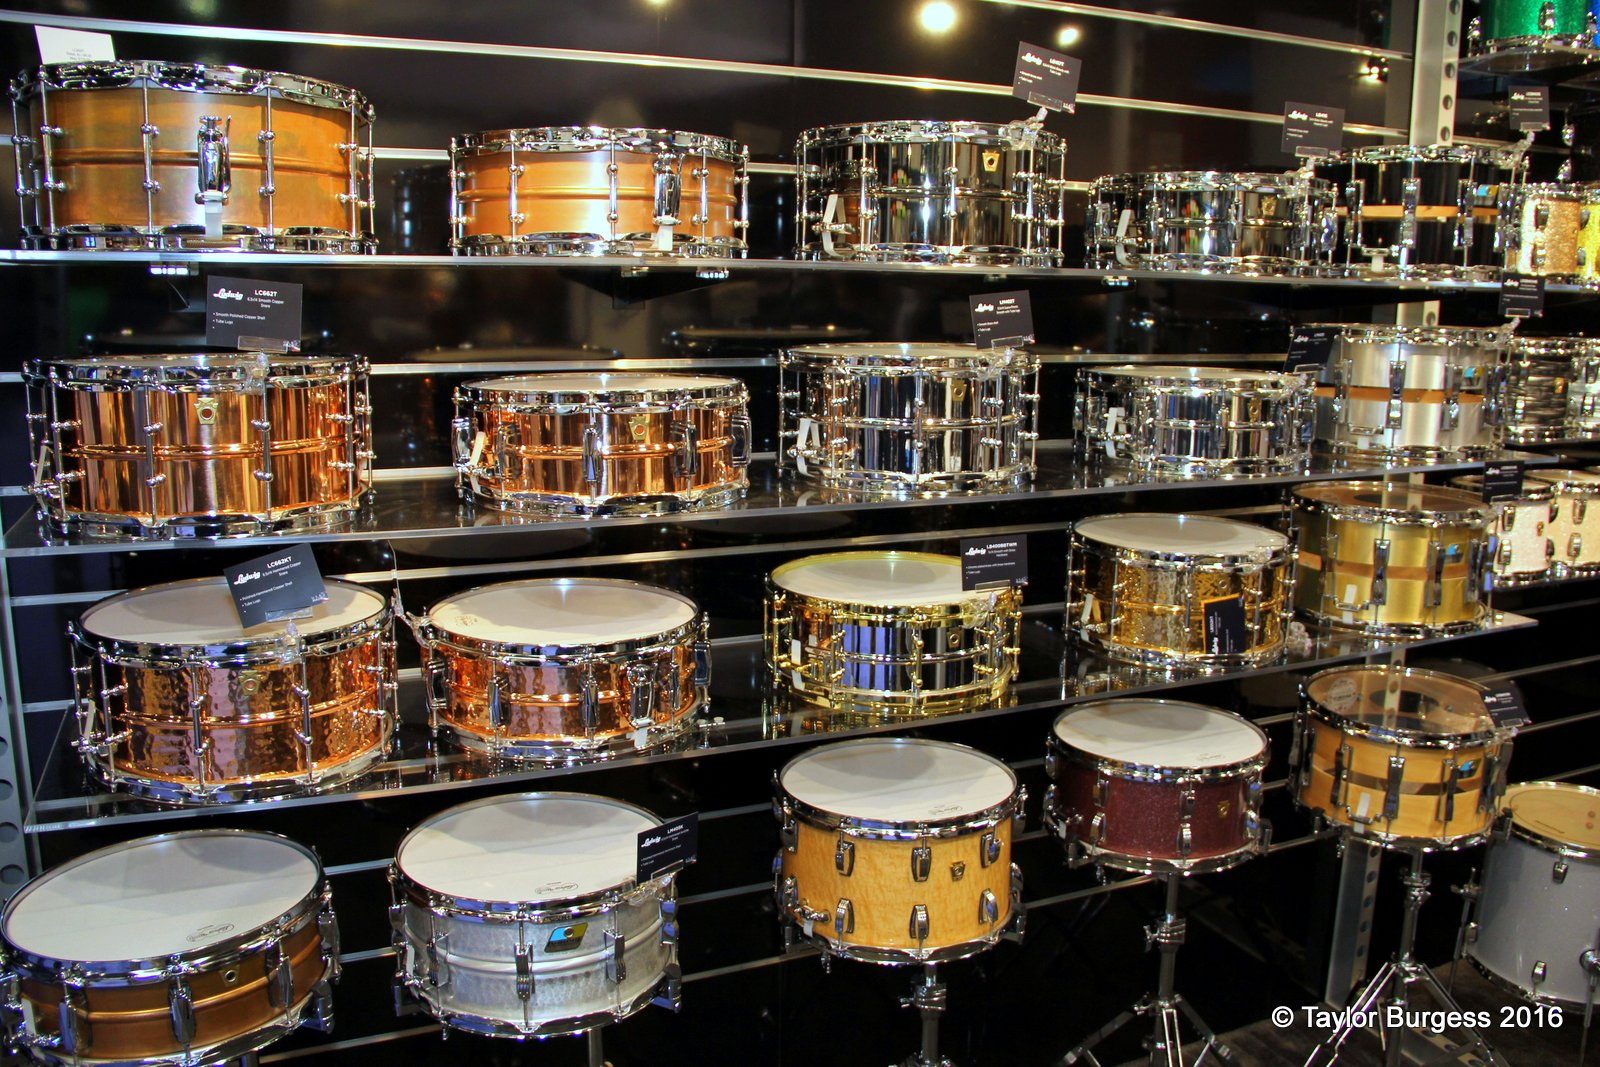 New 2016 Snare Drums from Ludwig